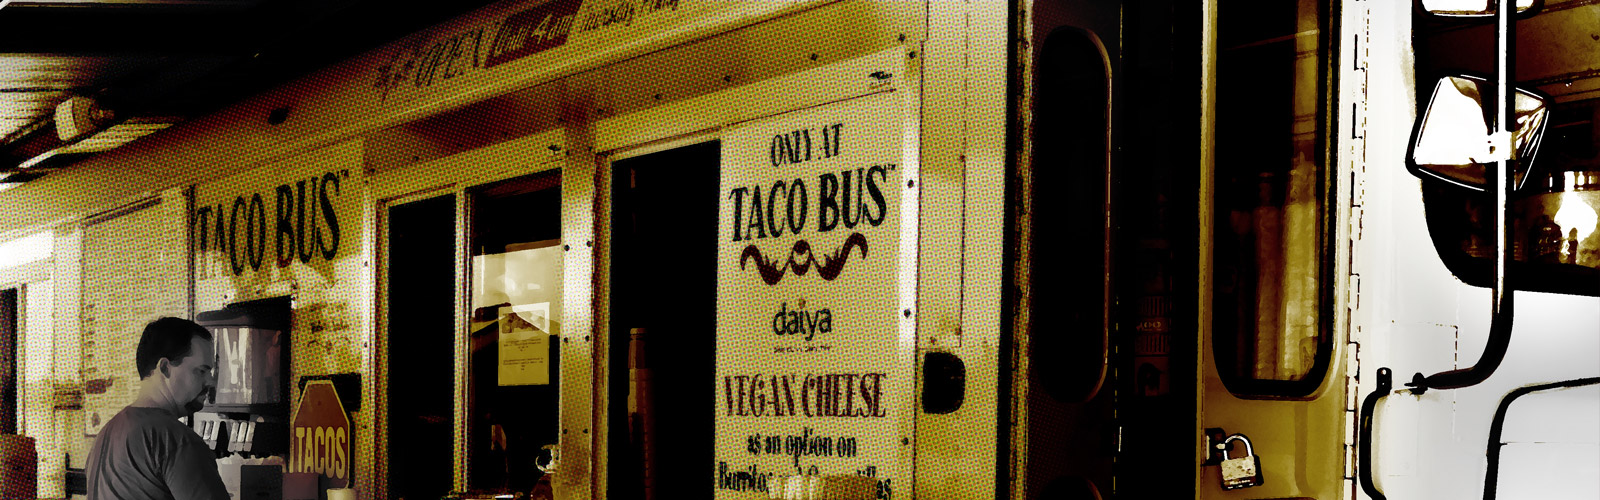 Taco Bus - Authentic Mexican Taste